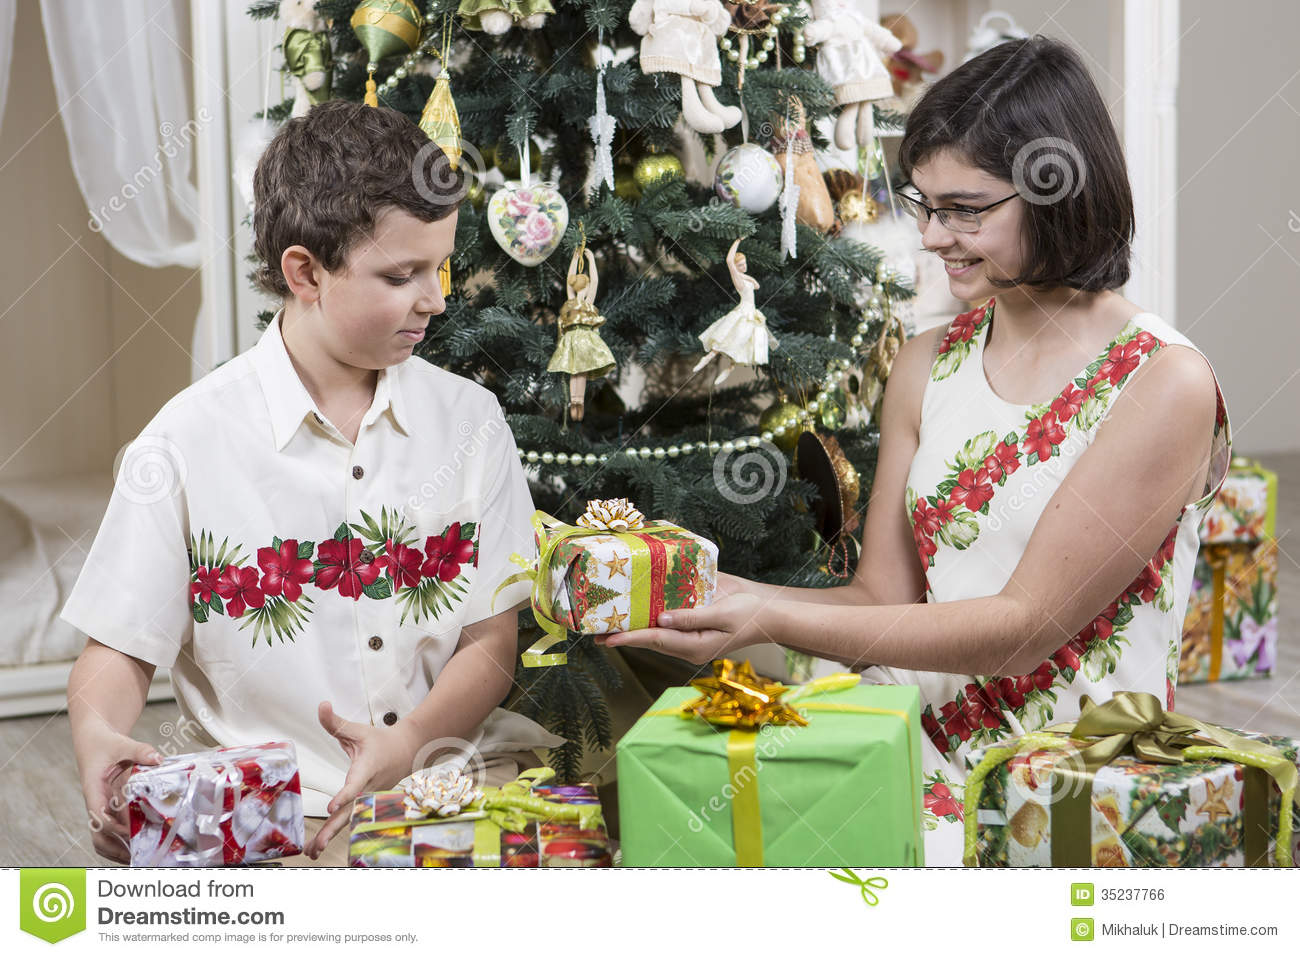 Giving Christmas gifts stock photo. Image of present - 35237766